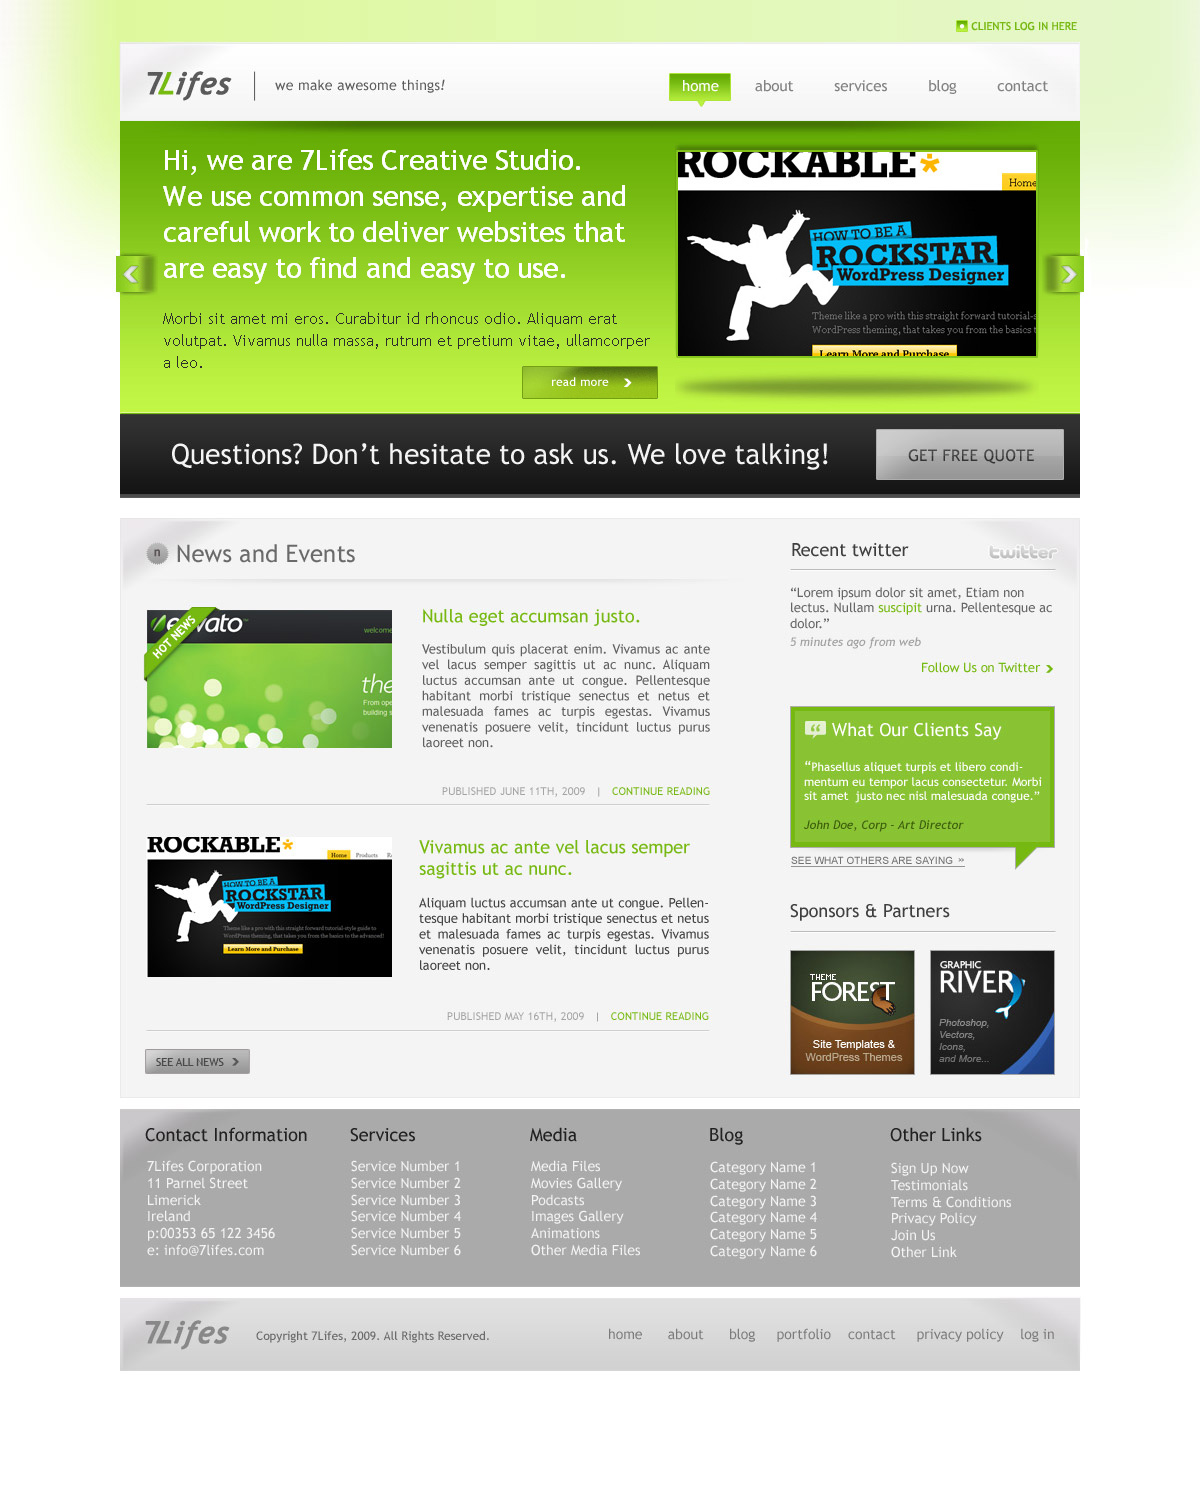 7Lifes - Modern and Professional HTML/CSS Template - Homepage - Color Green - Color full baner with company or product prezentation.